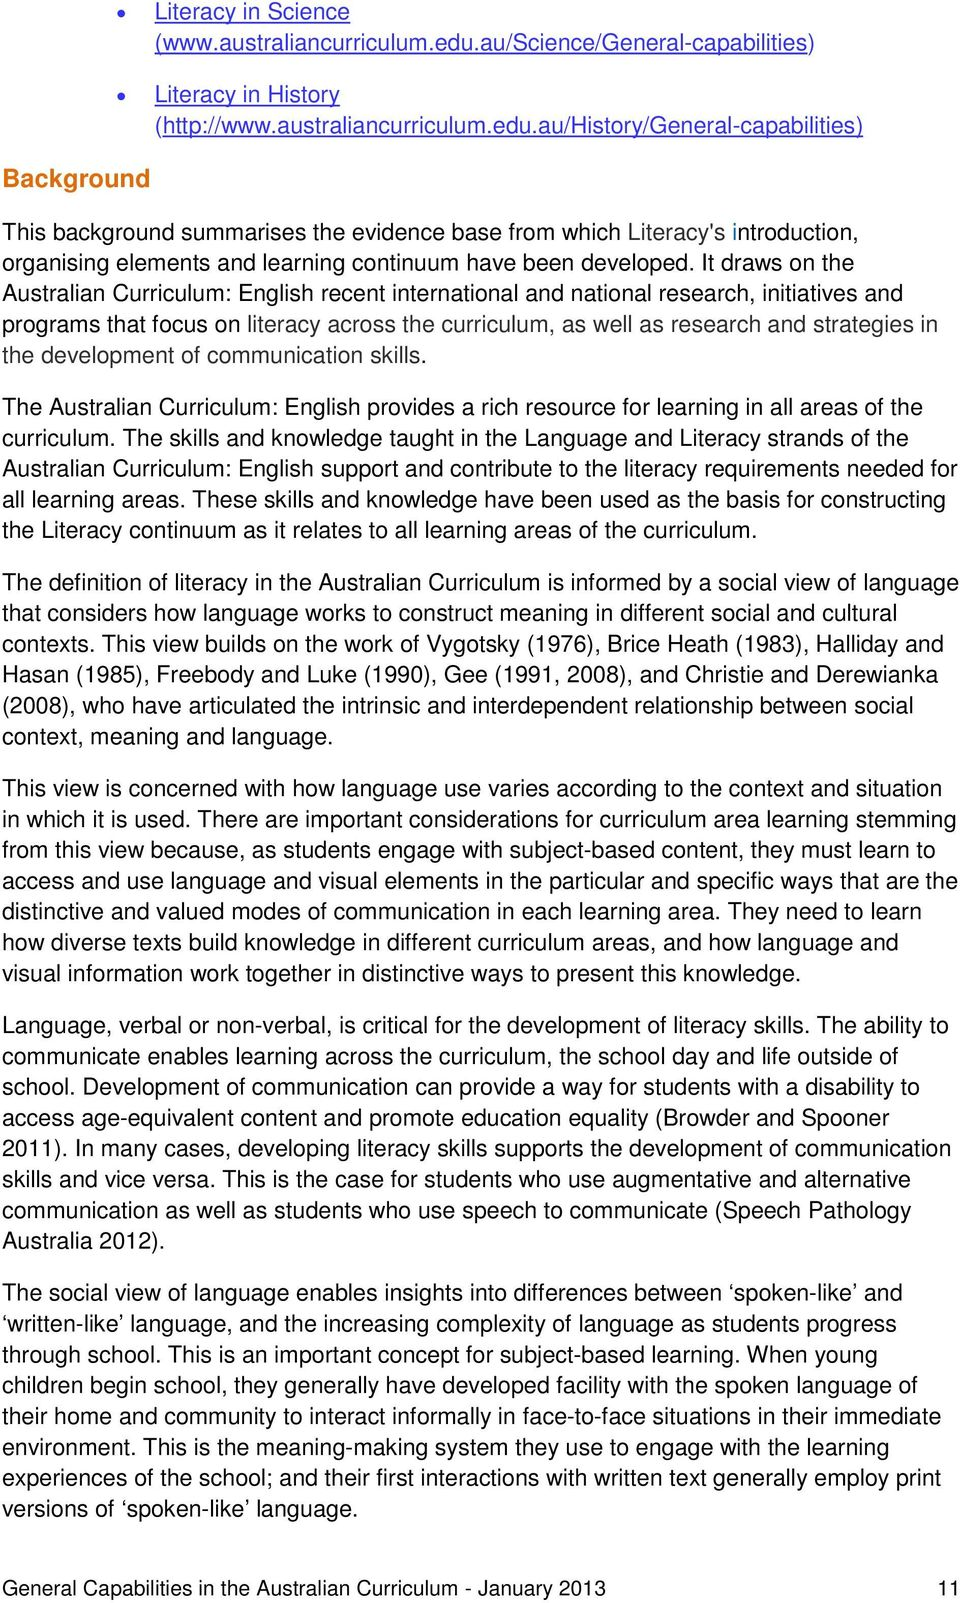 au/history/general-capabilities) This background summarises the evidence base from which Literacy's introduction, organising elements and learning continuum have been developed.